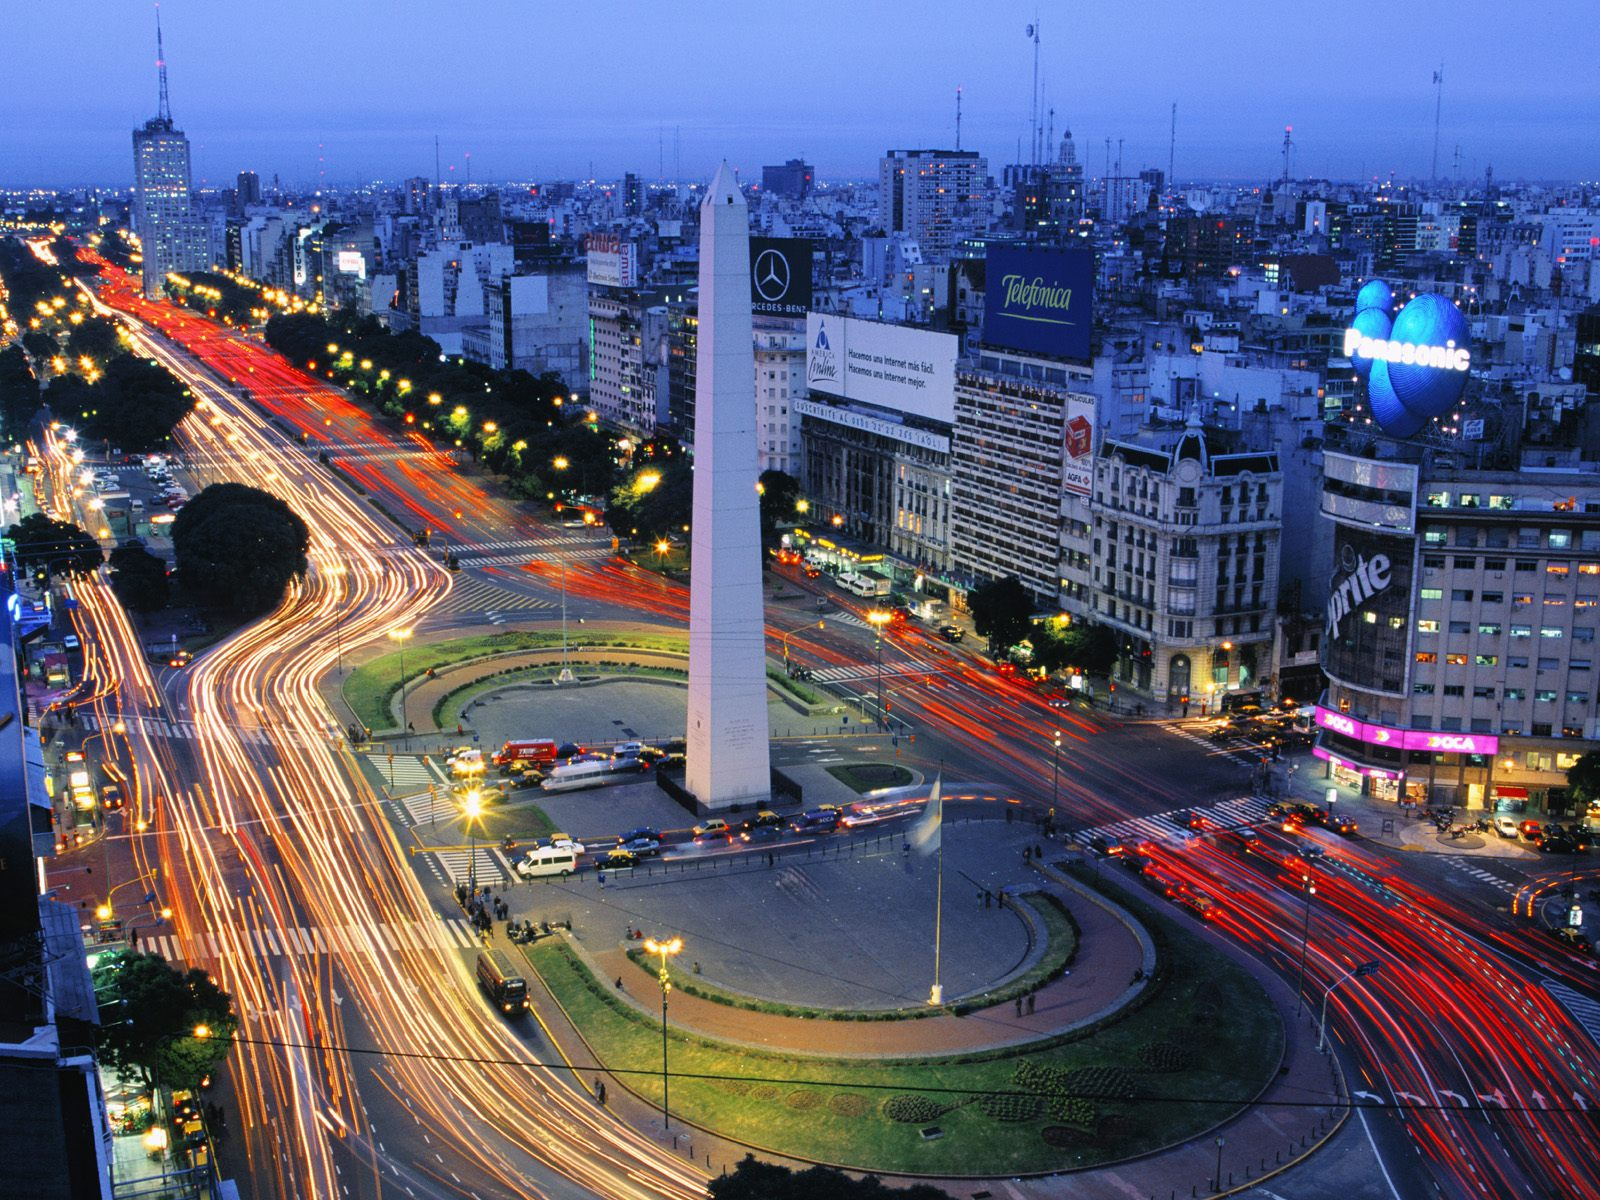 Hotels near Buenos Aires Argentina